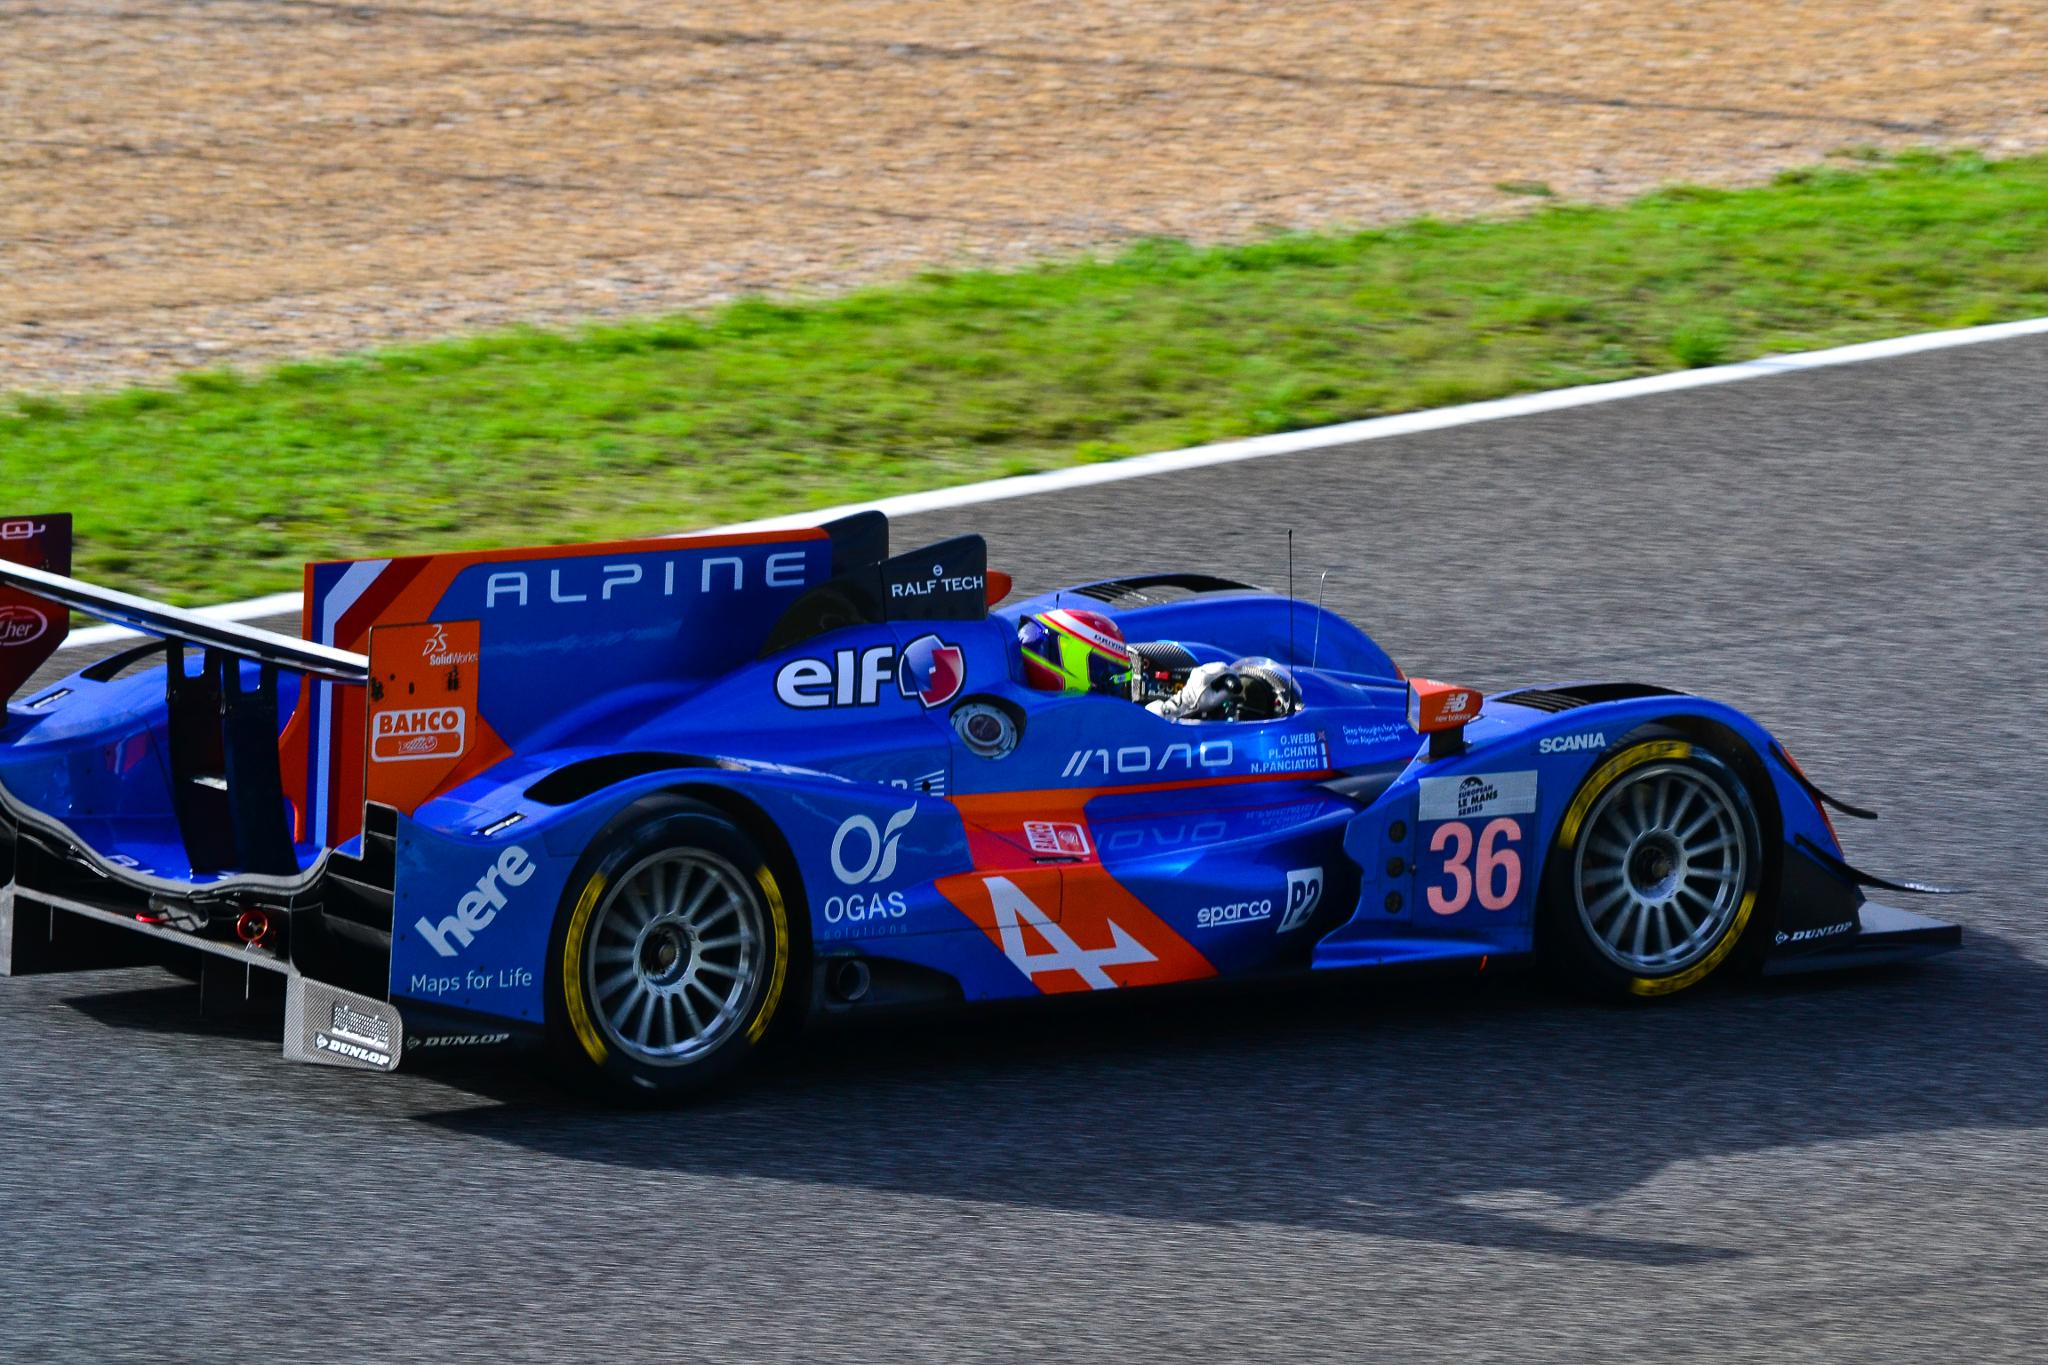 Alpine ELMS P2 racing car by José Pedro Borges